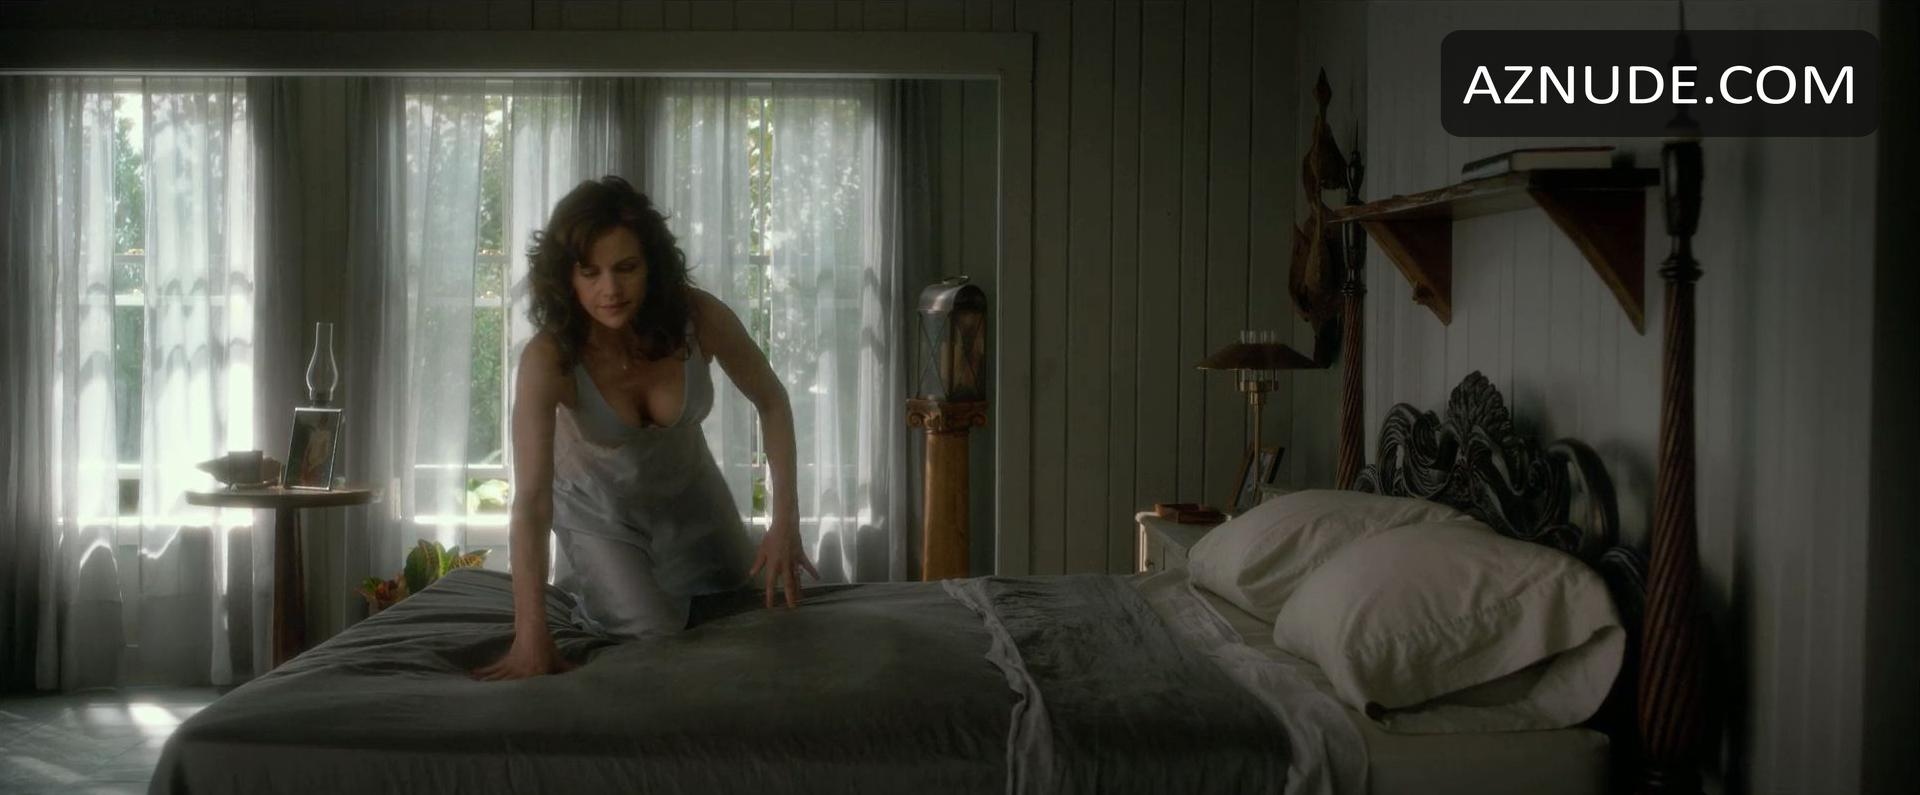 Carla gugino every day 2010 - 2 part 5